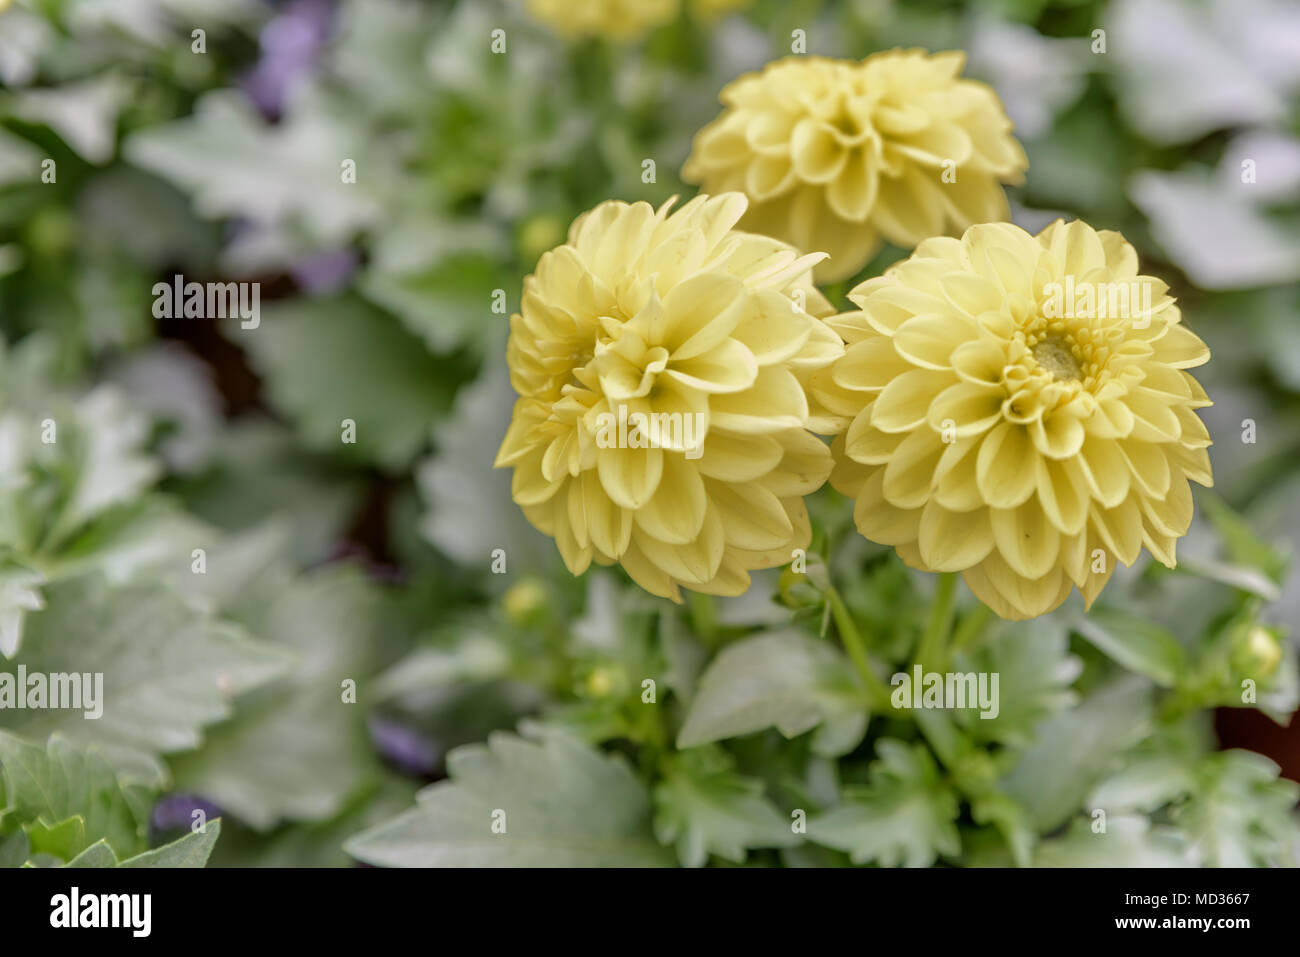 Top View Of Dahlia Fresh Flowers Blooming In Natural Garden For Sale